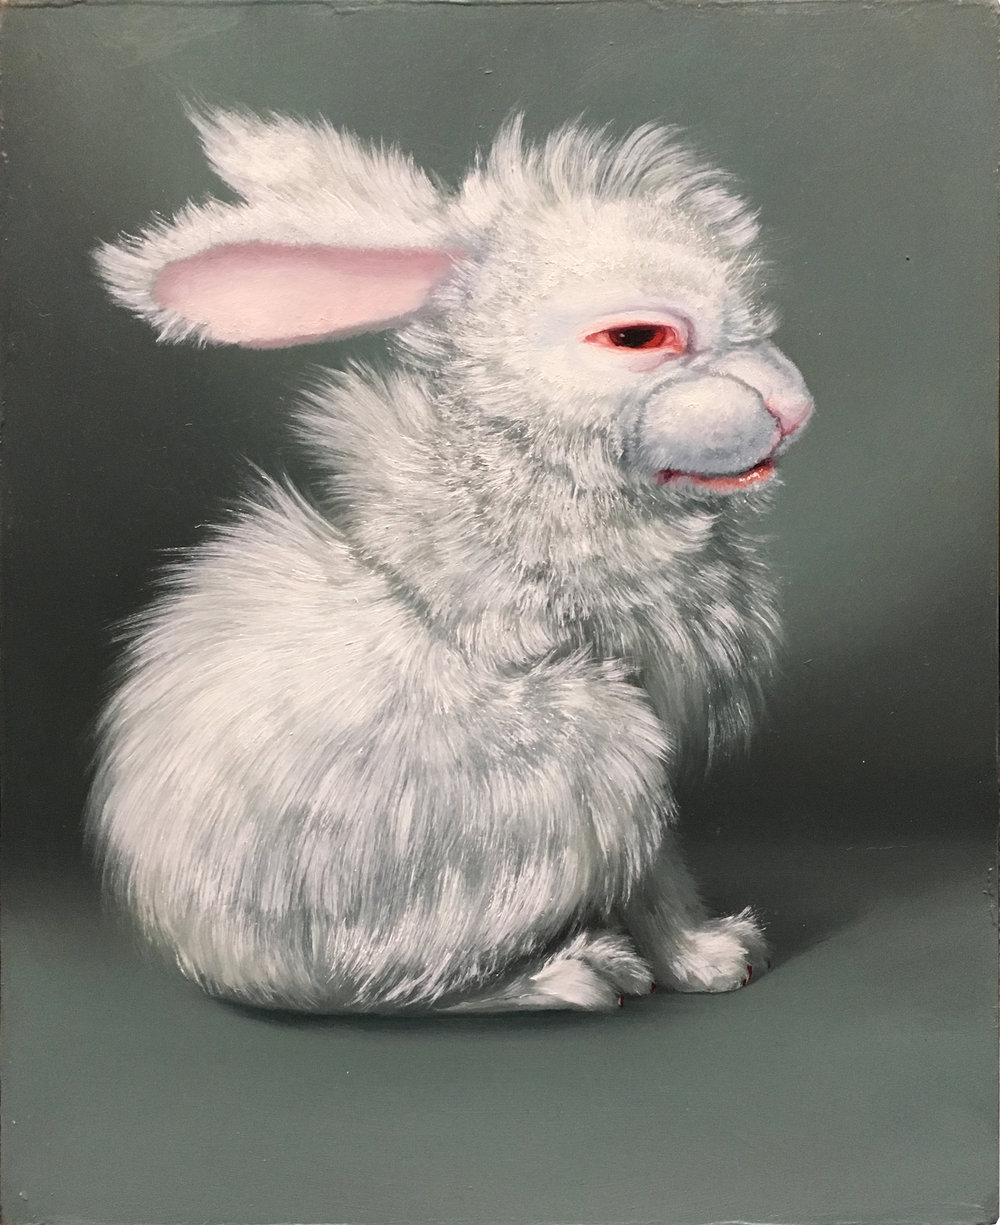 ADDICTION BUNNIES - II. UNTITLED WHITE HABIT RABBIT 1 (COTTON), Oil on Panel, 8 1/4 x 10 1/4""